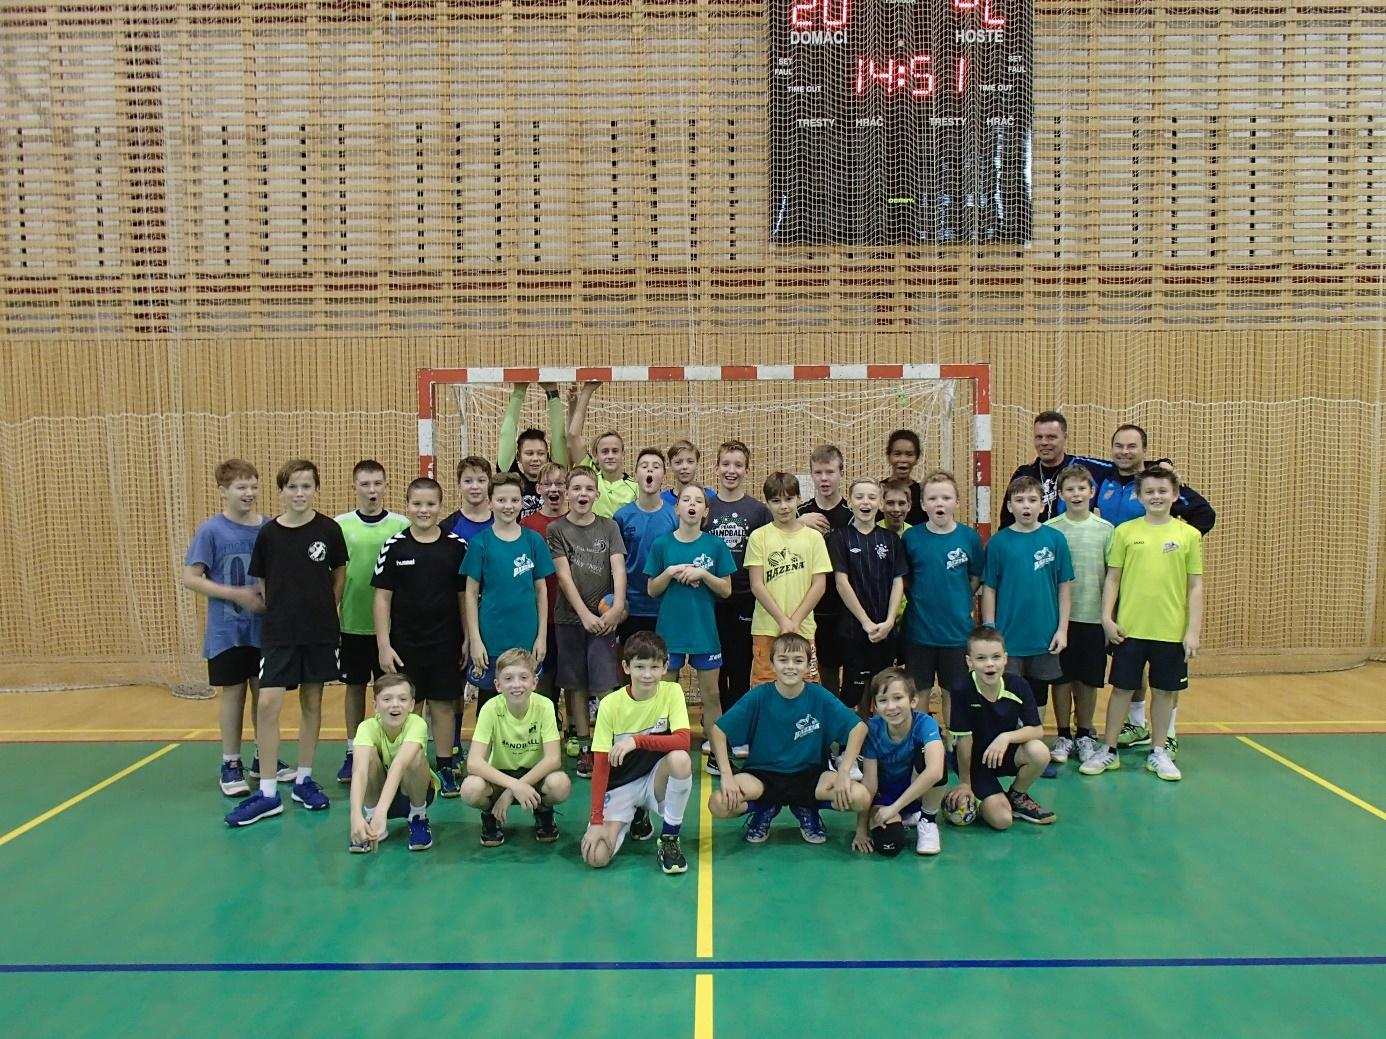 C:\Users\Pedagog\Pictures\Hanball camp ml. ž. 25.11.18\PB250172.JPG